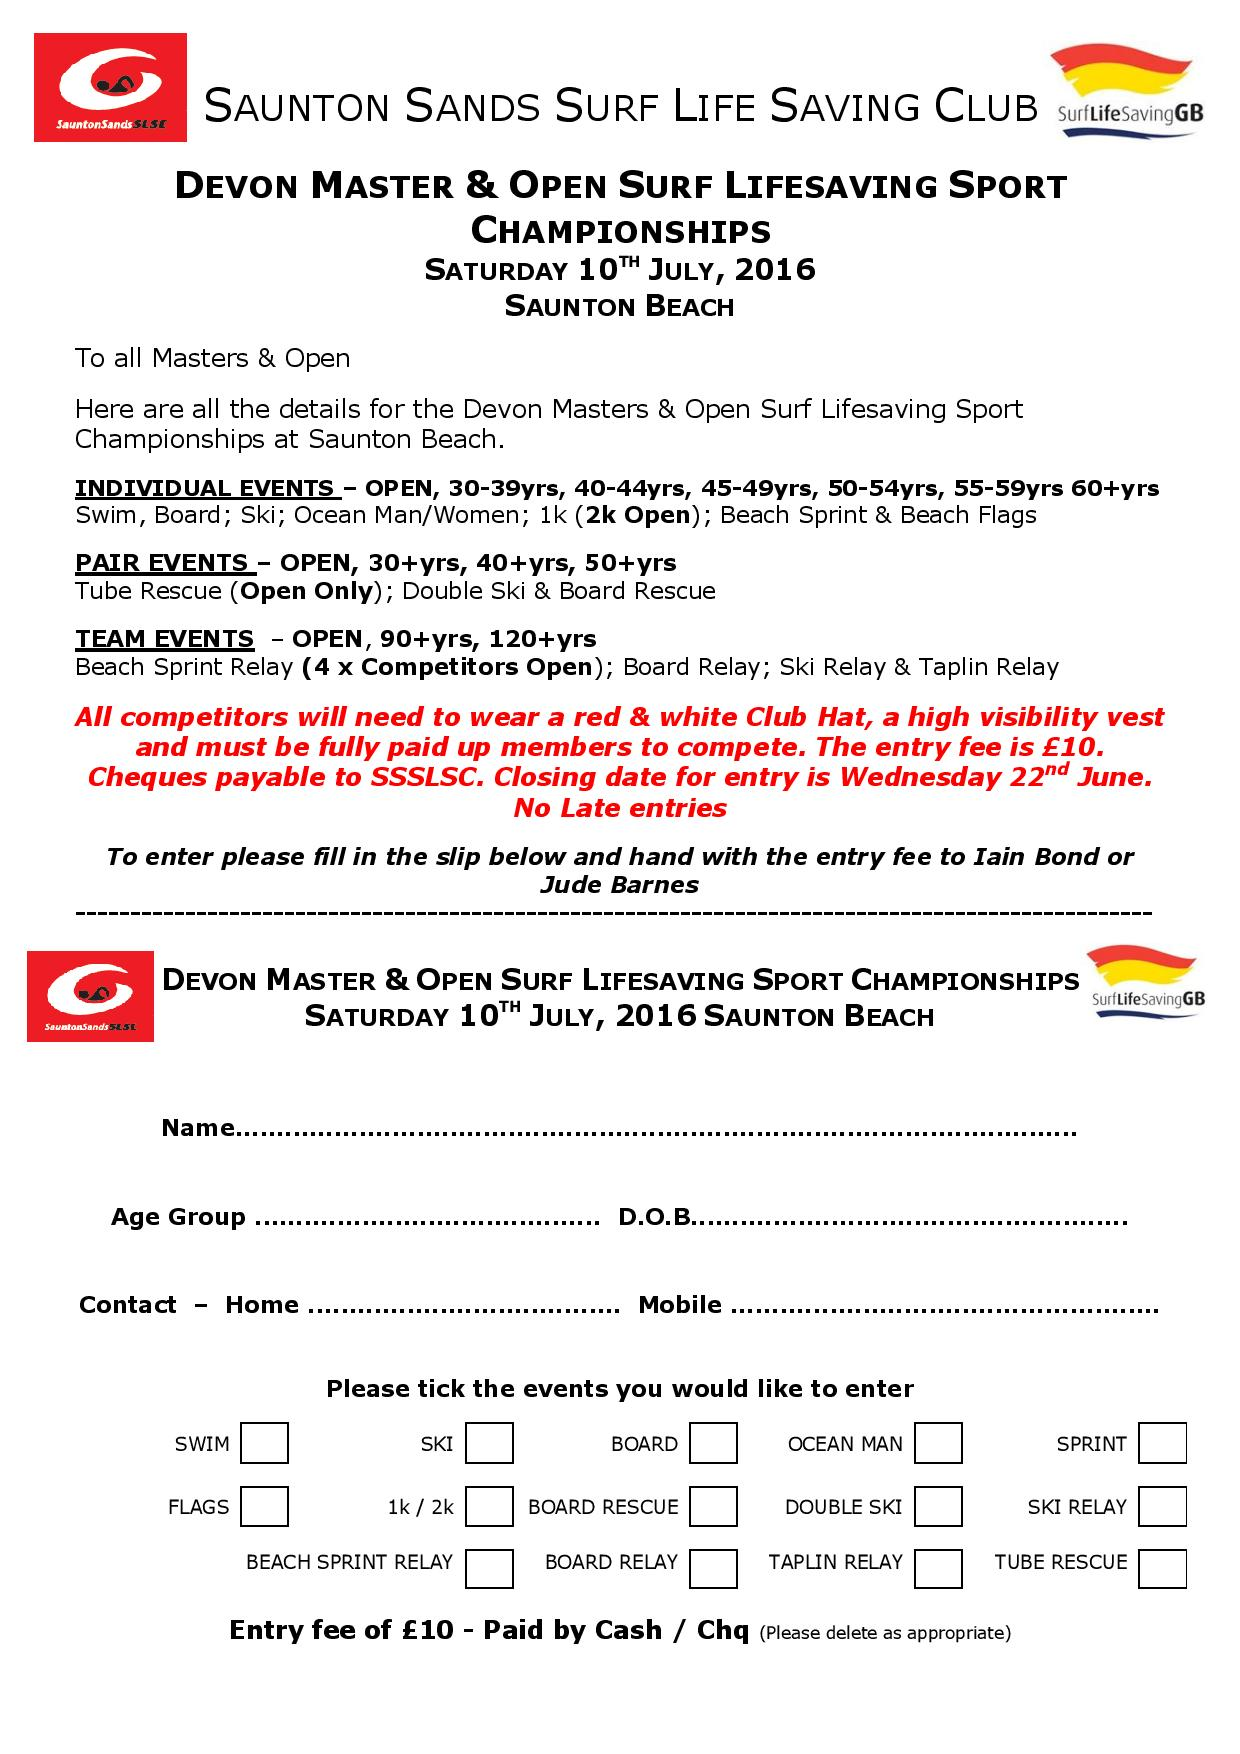 Masters-Open-Devon-Lifesaving-Ocean-Entry-Form-2016-page-001